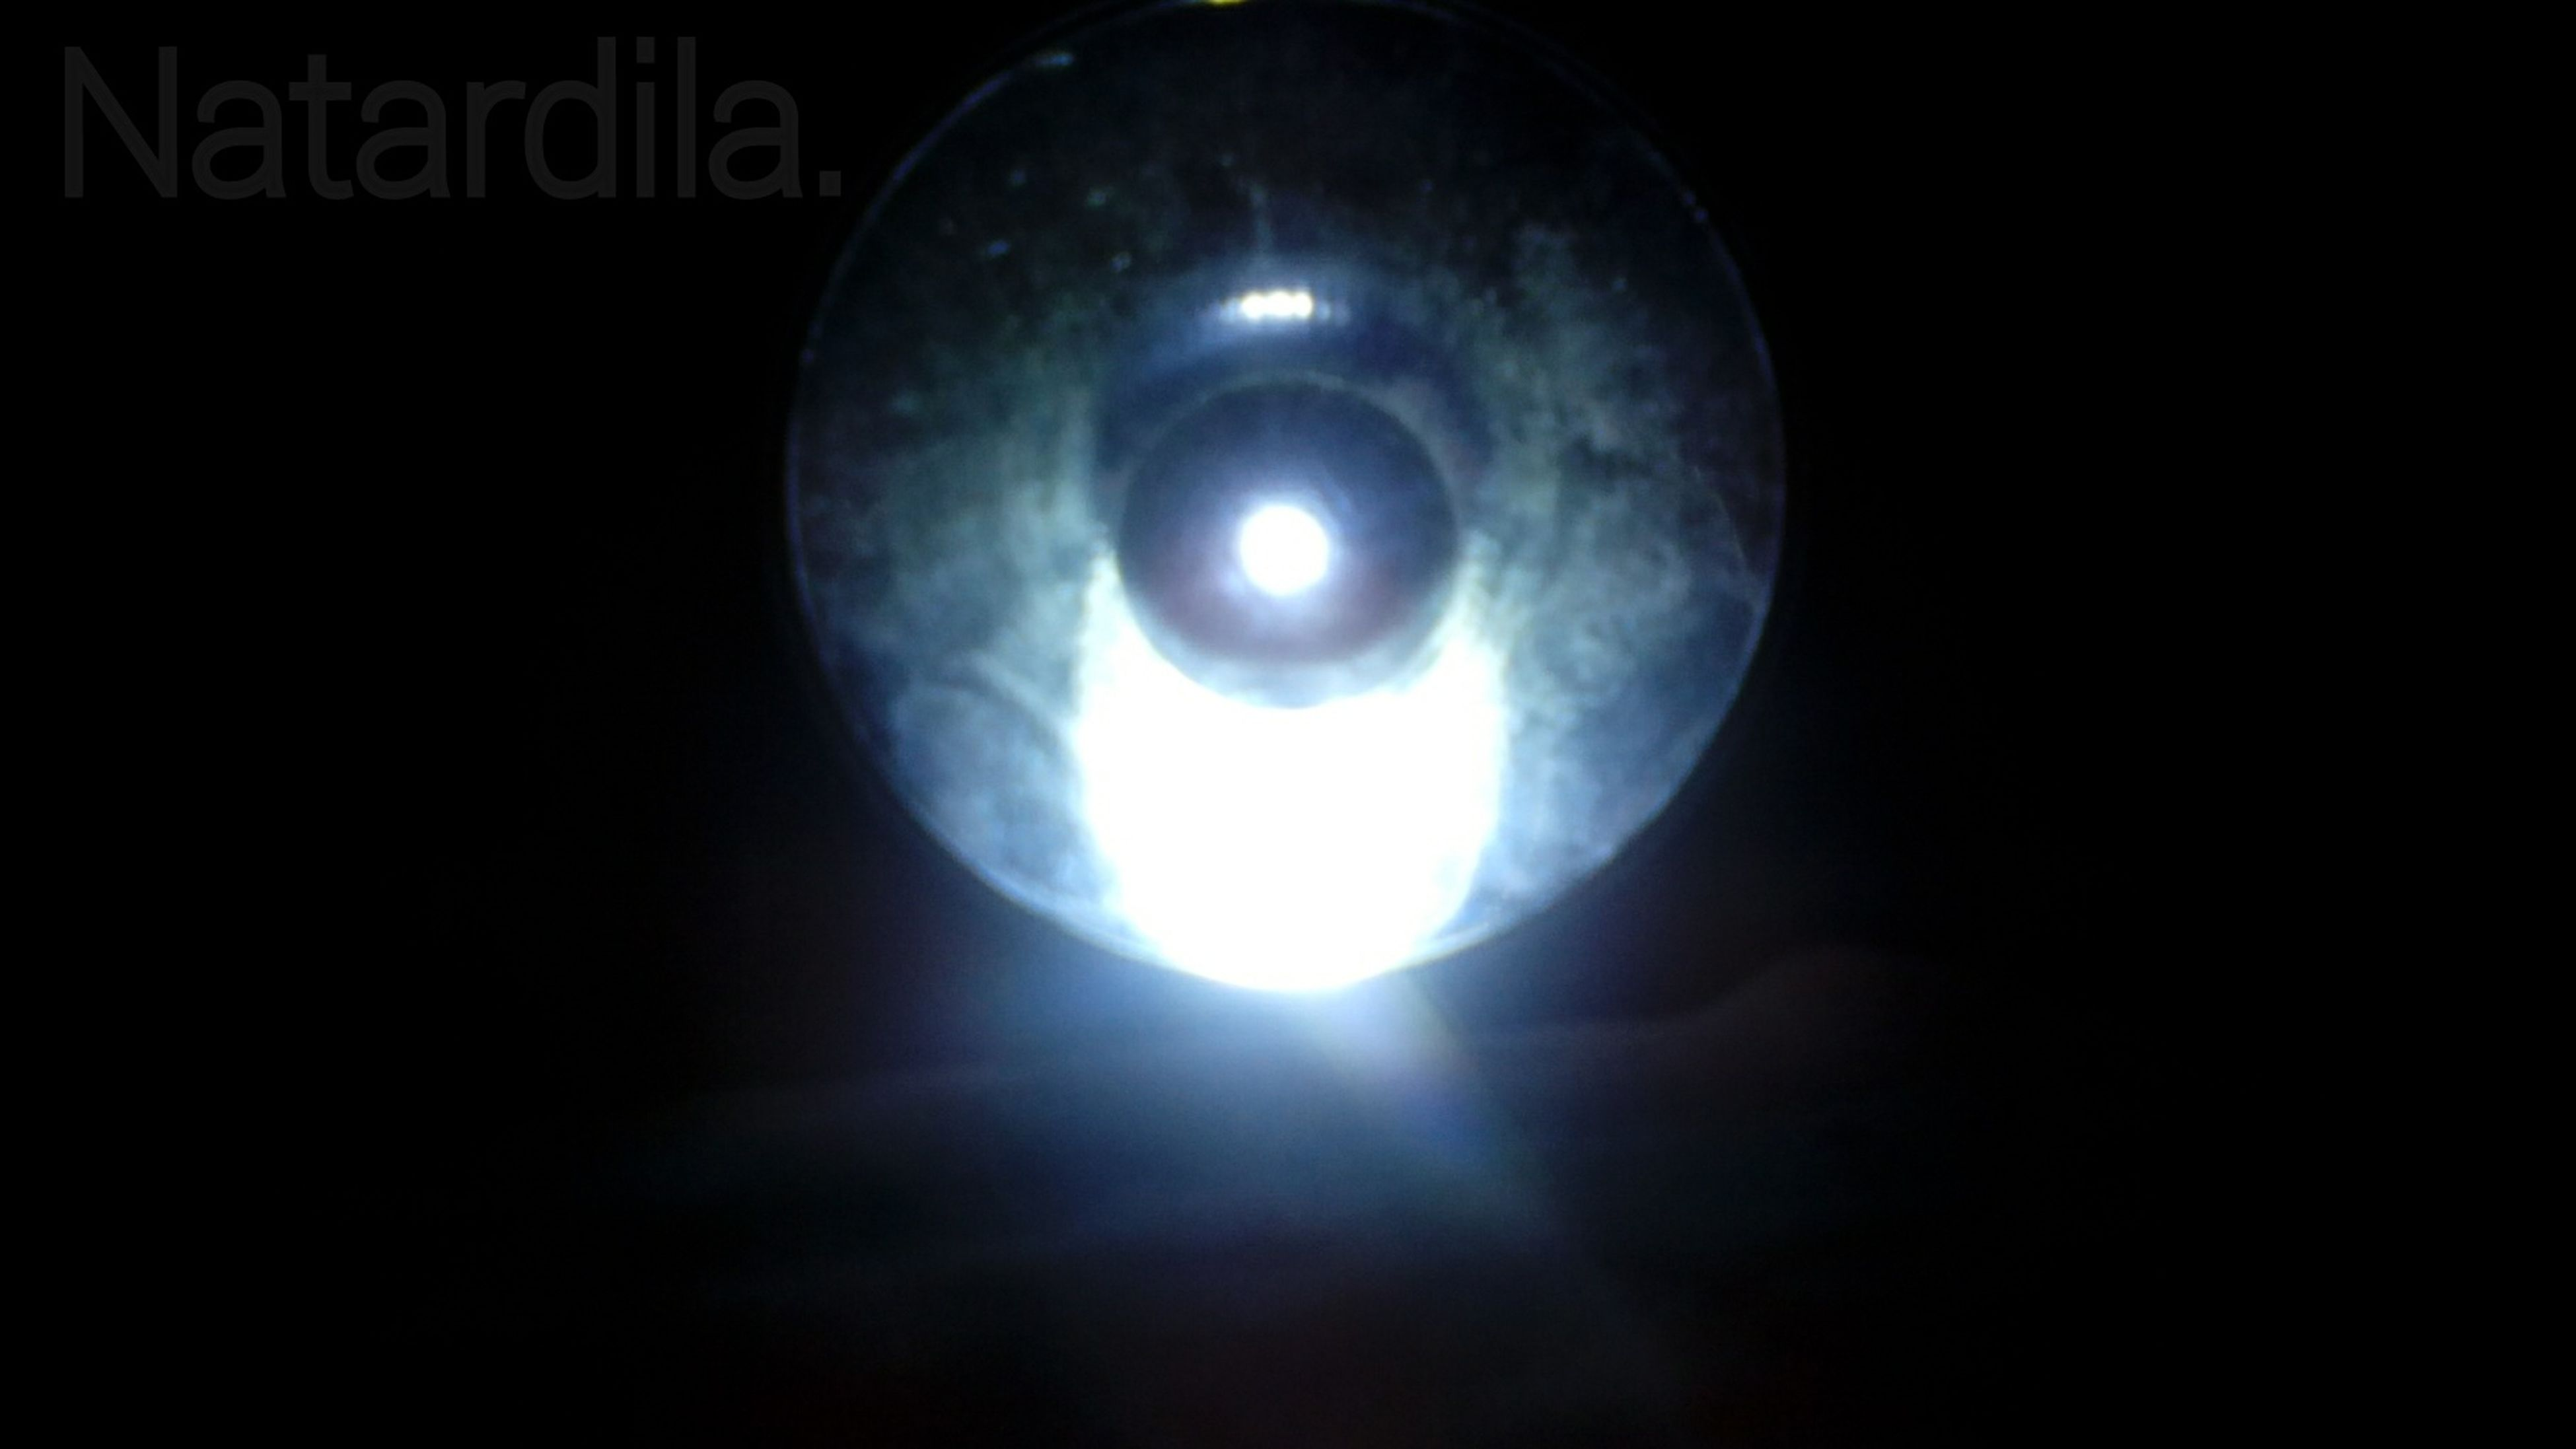 illuminated, lighting equipment, low angle view, electricity, light bulb, night, circle, glowing, ceiling, indoors, electric lamp, electric light, dark, light - natural phenomenon, close-up, sphere, hanging, copy space, lamp, no people